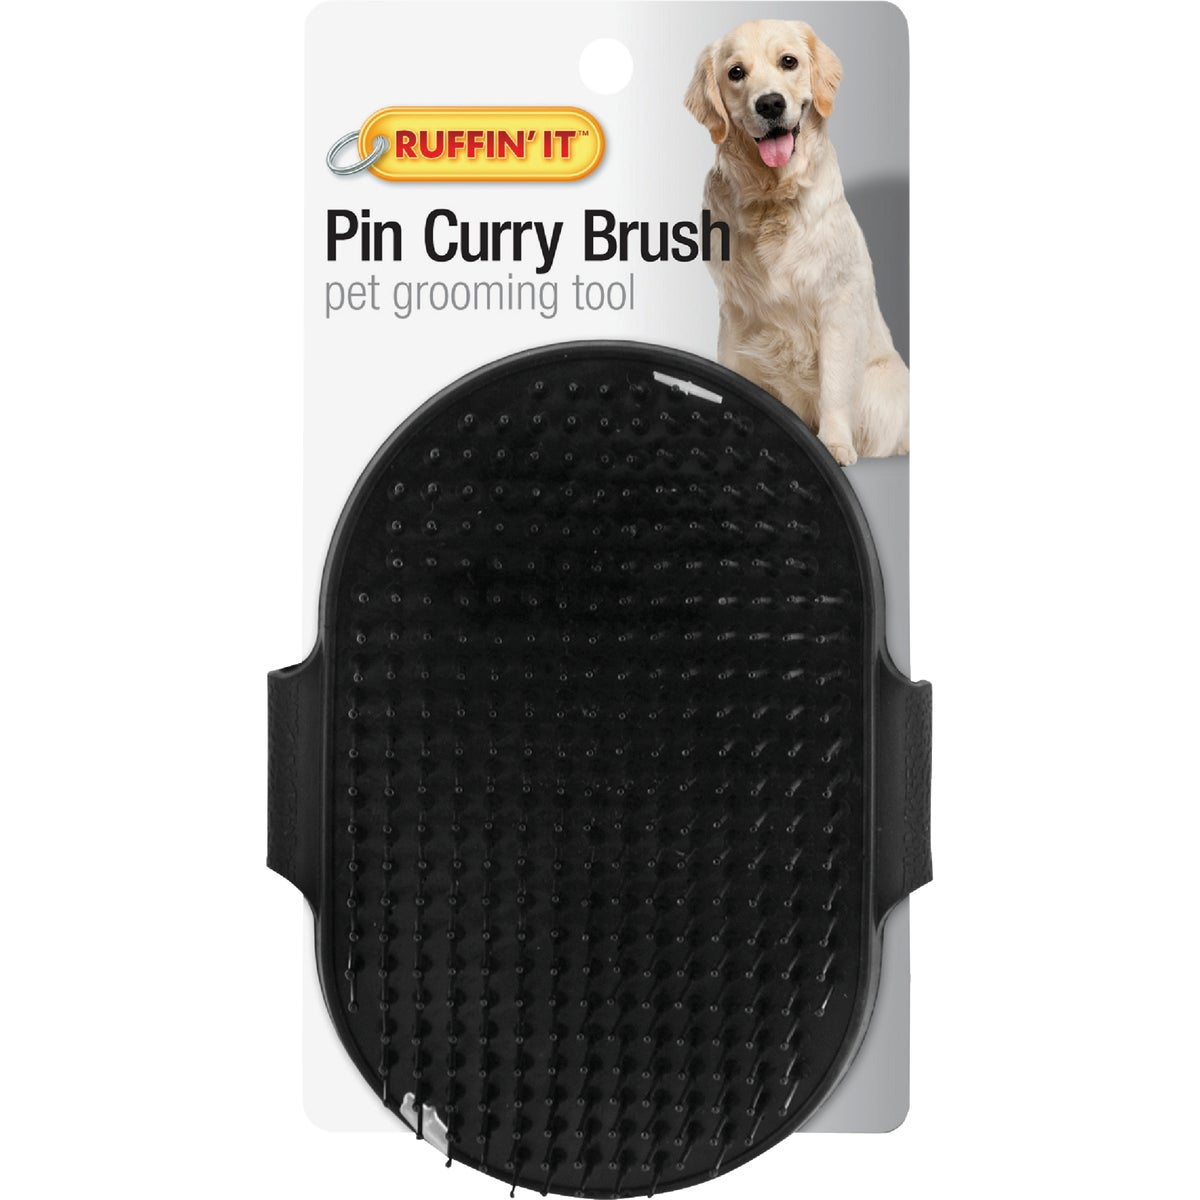 PALM PIN CURRY BRUSH